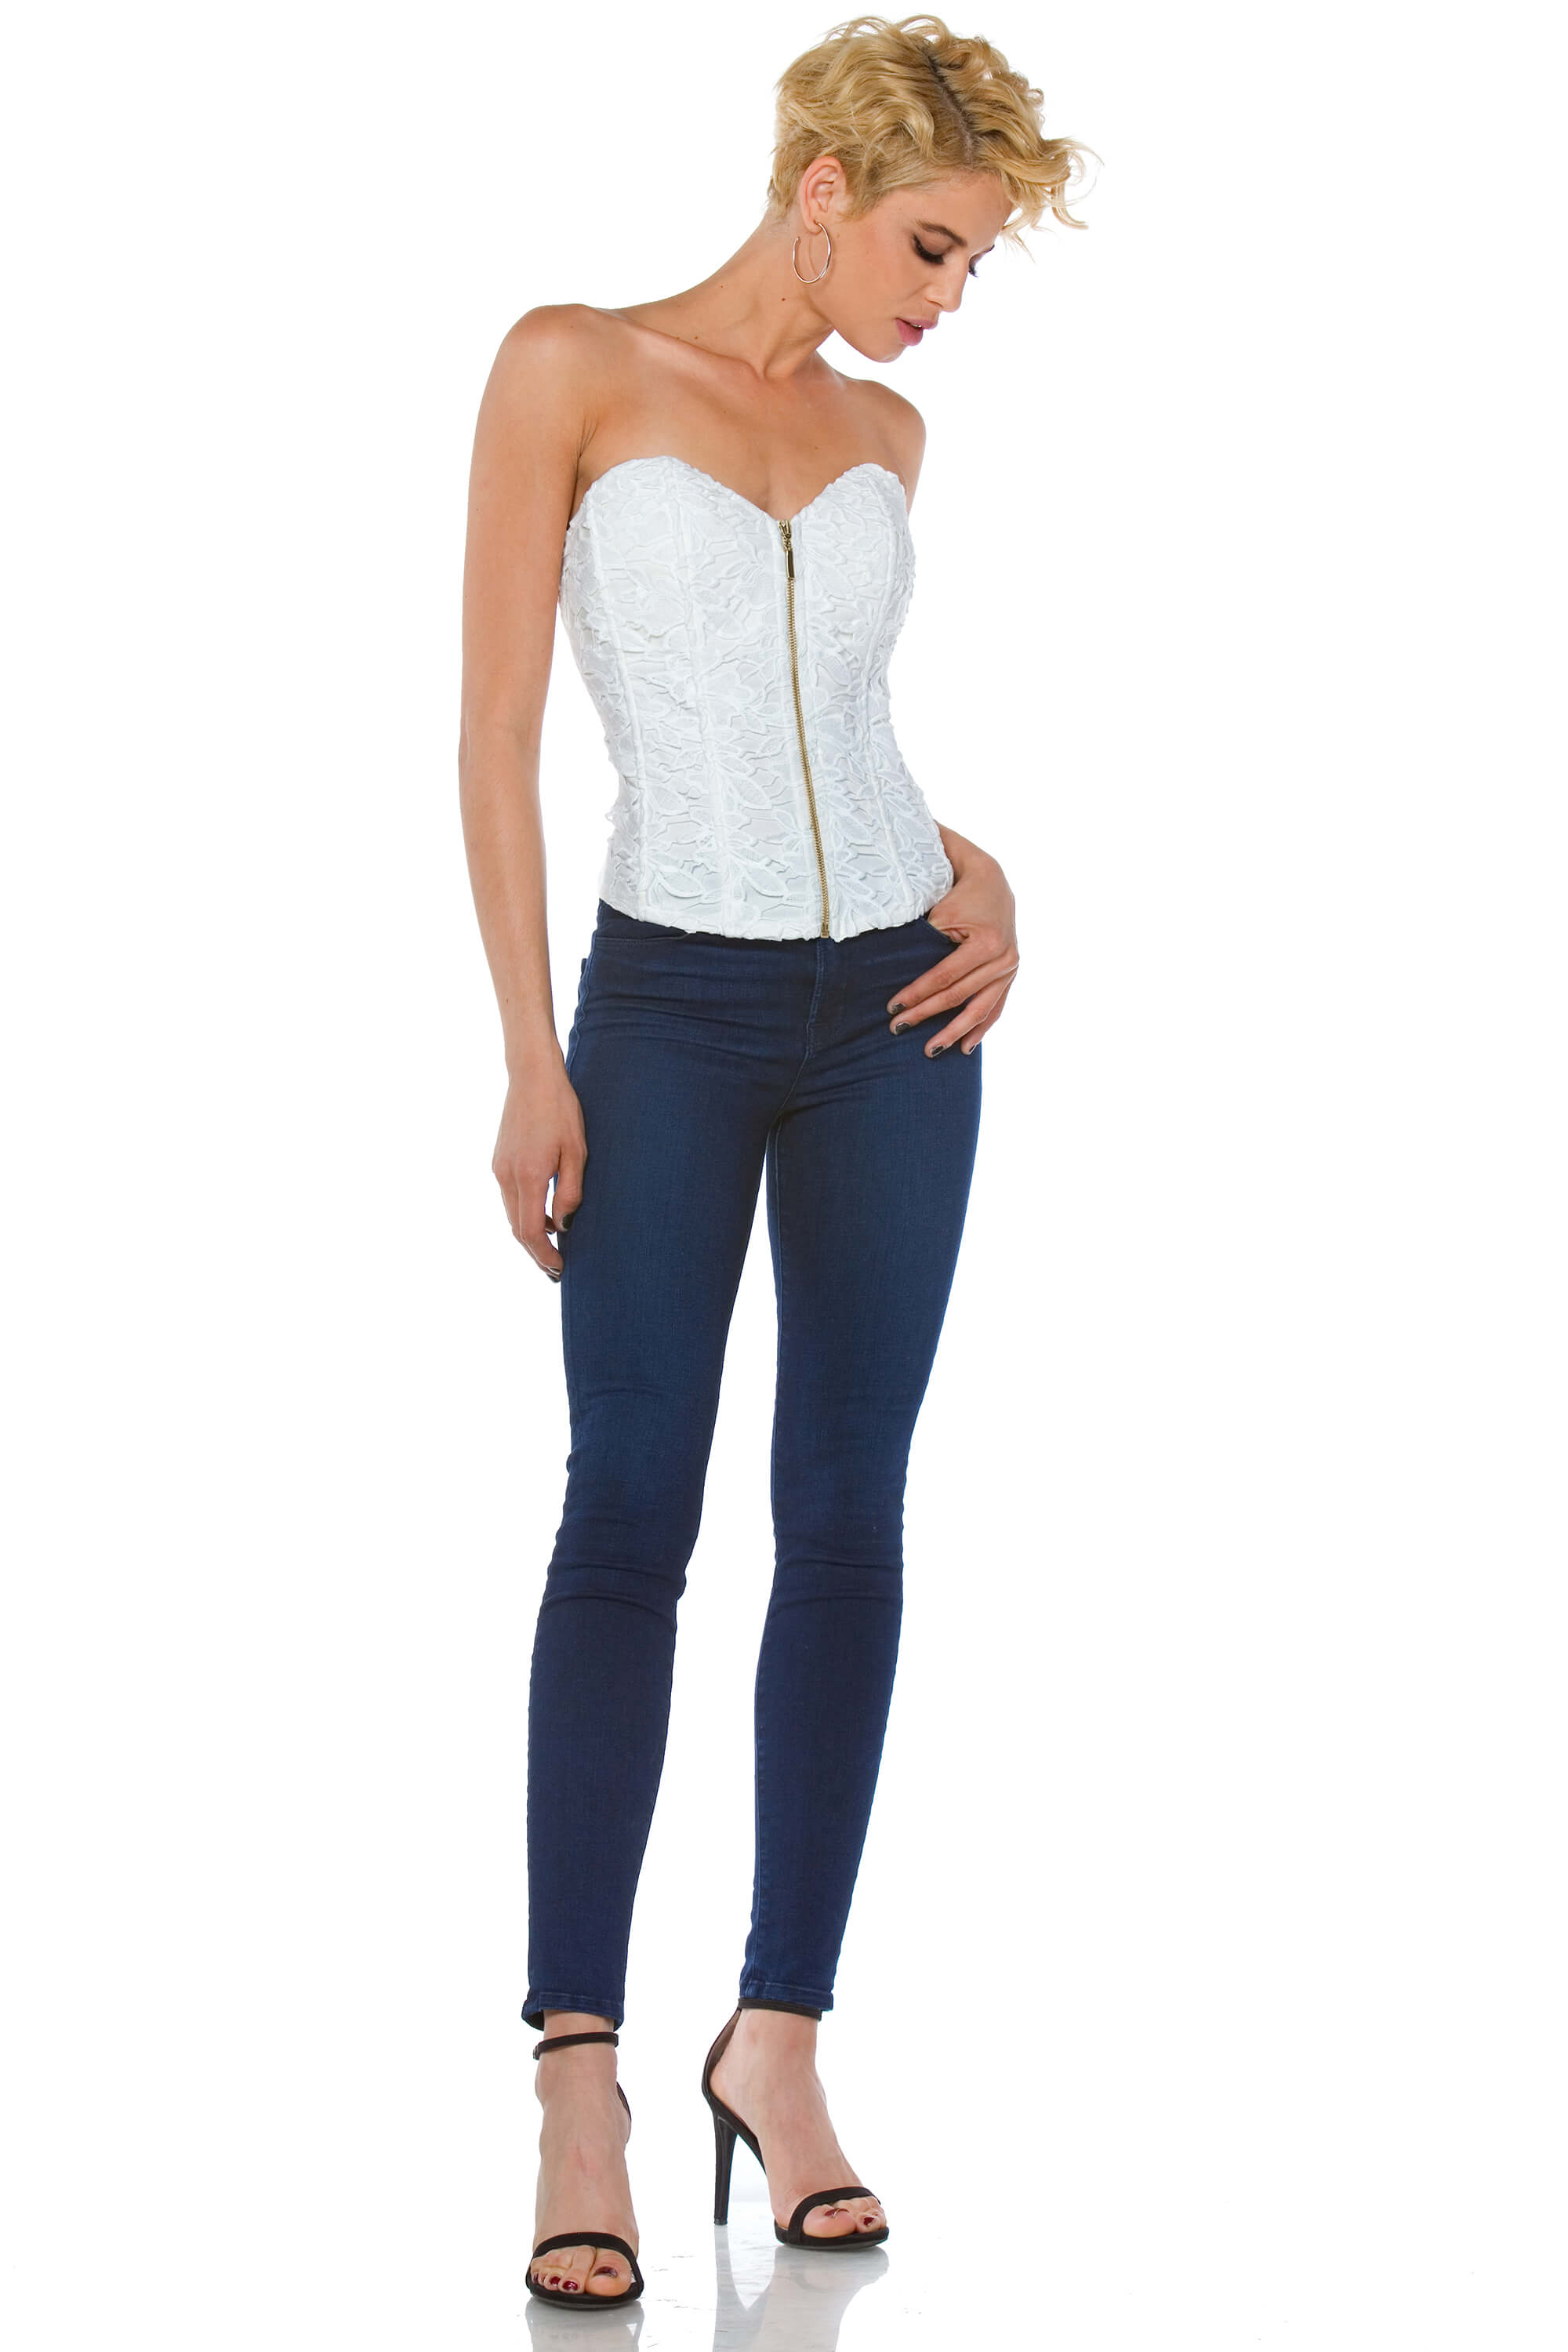 Annabelle Lace Corset Top for Women